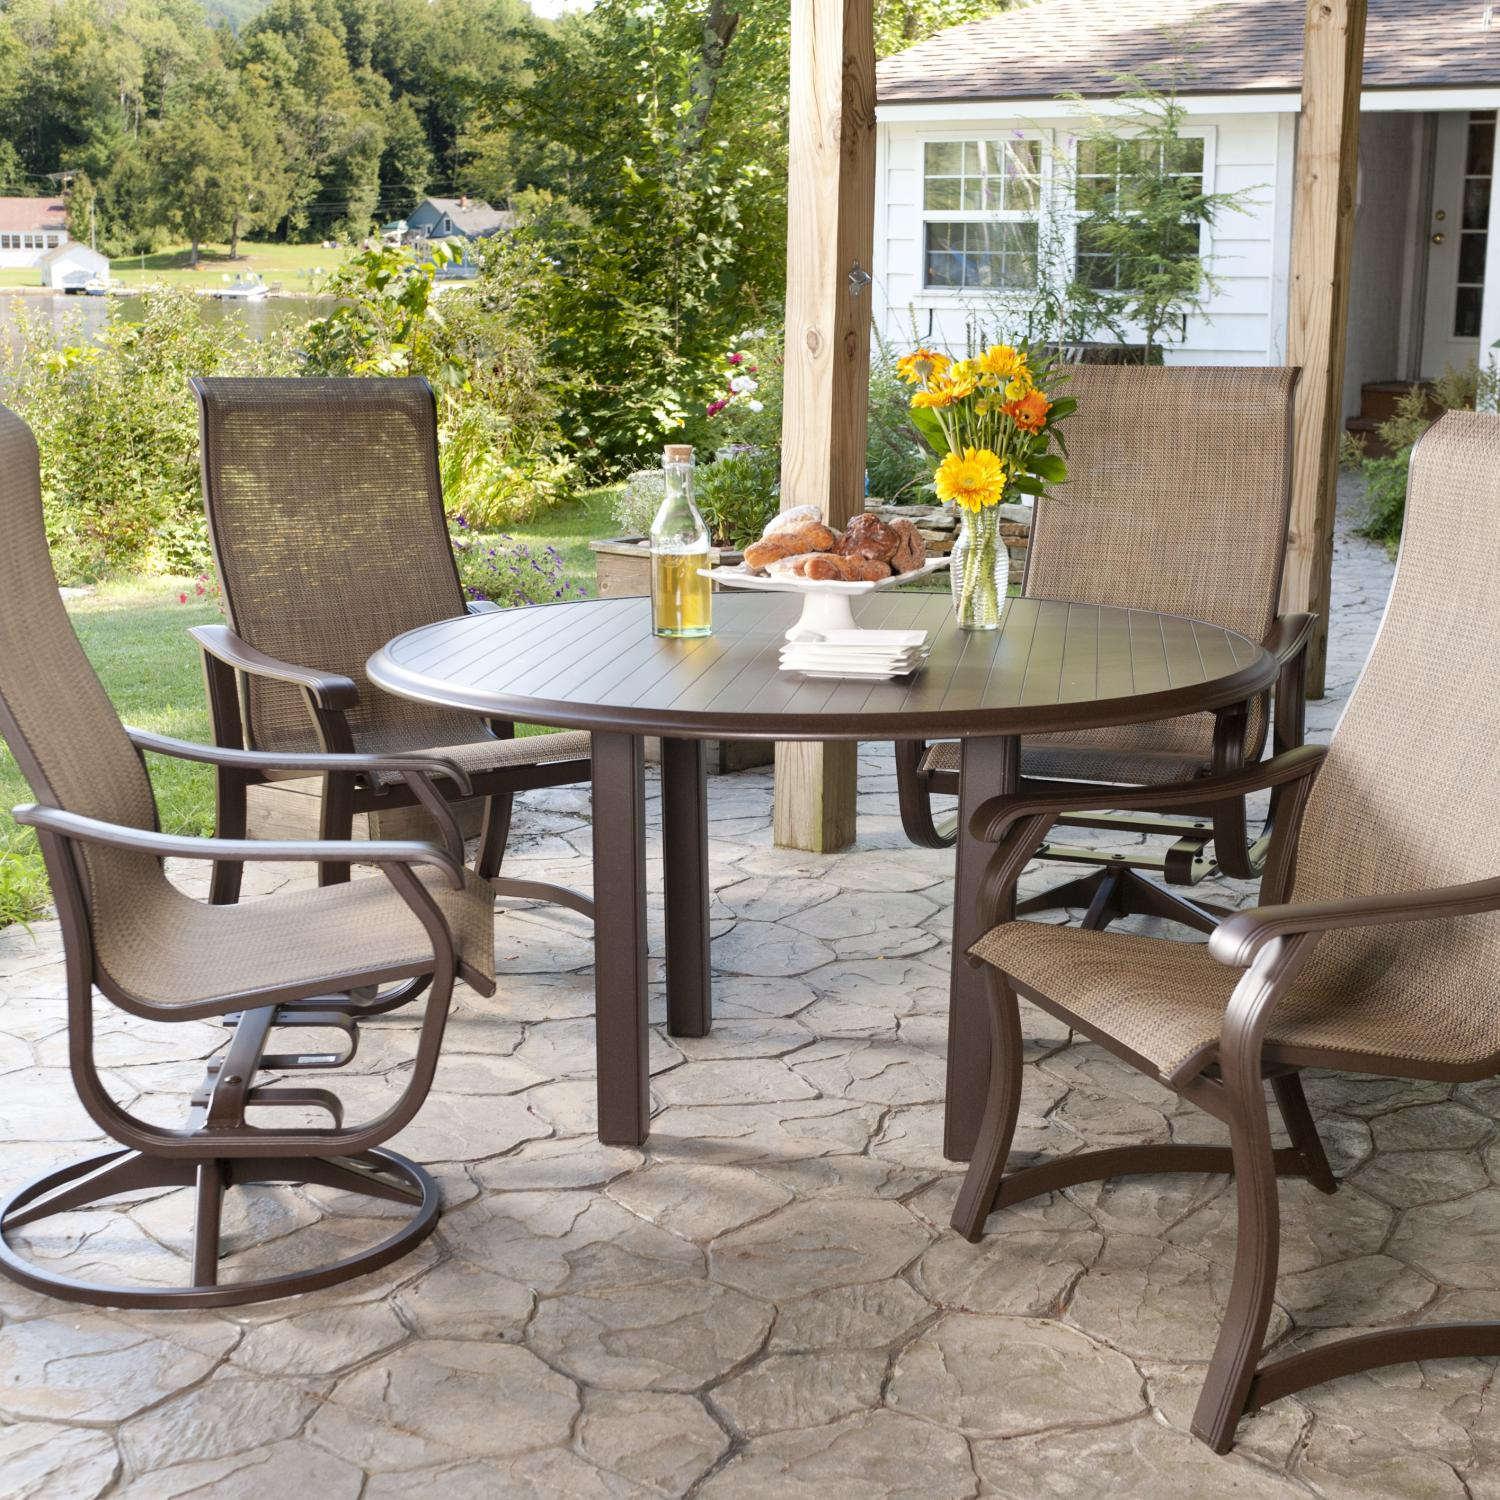 Patio dining sets sale creativity for Patio table and chairs sale